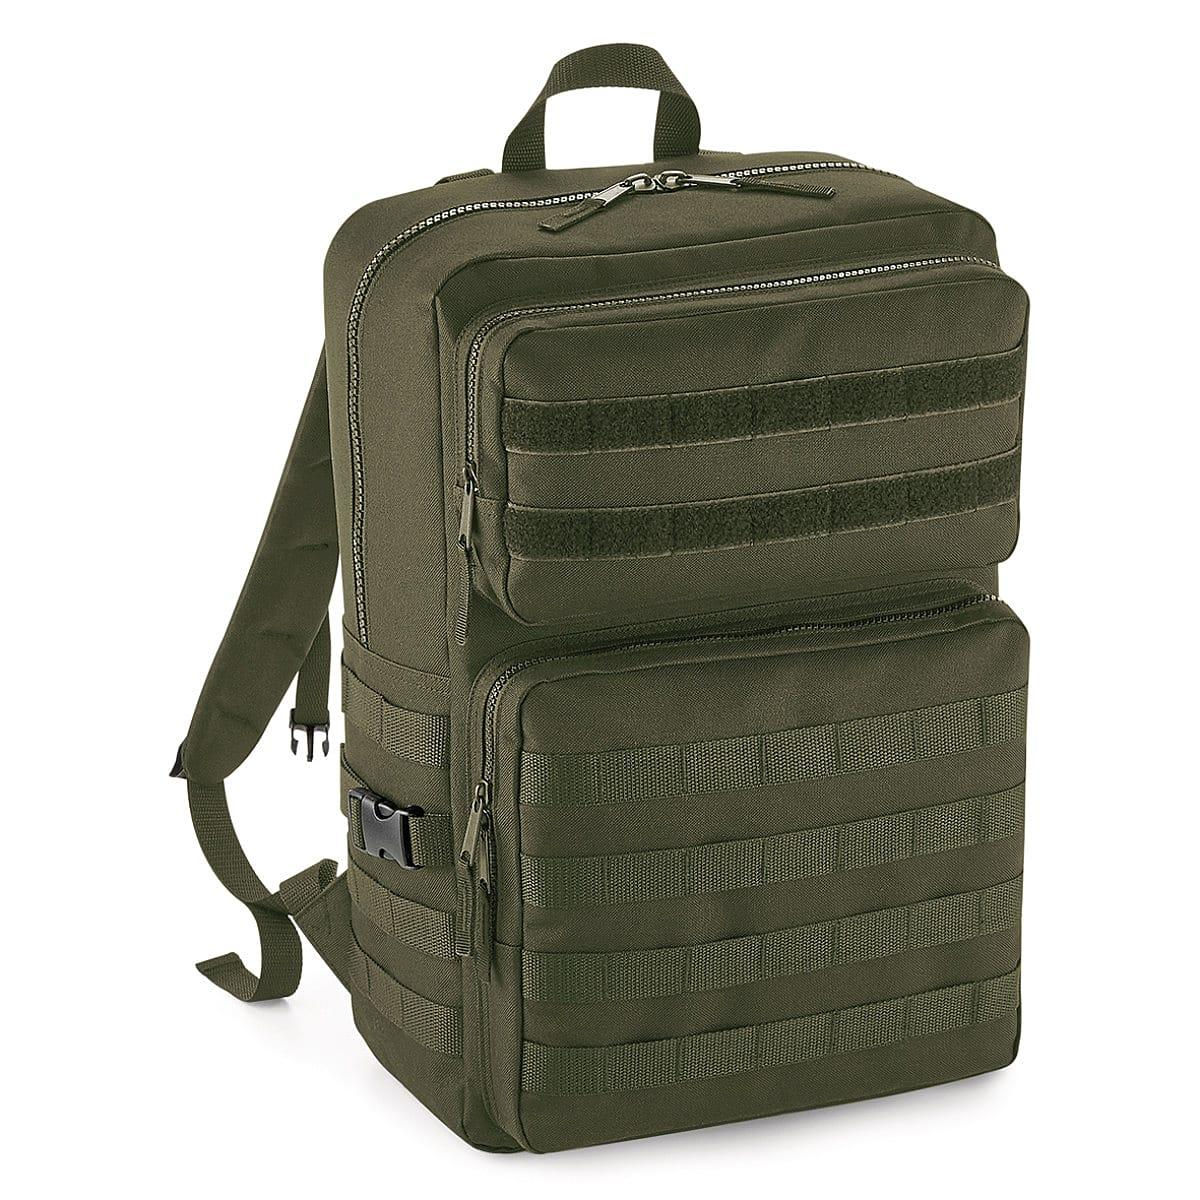 Bagbase Molle Tachtical Backpack in Military Green (Product Code: BG848)